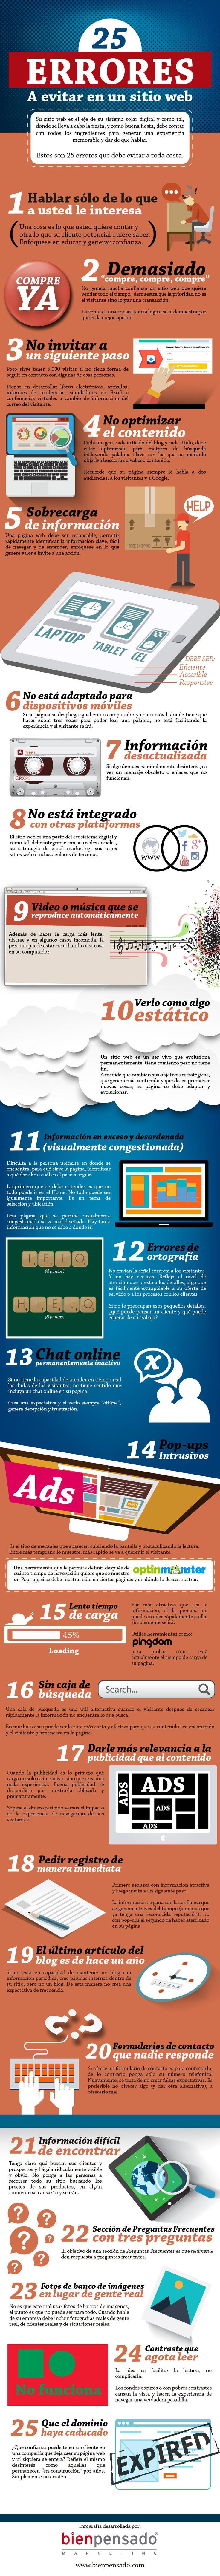 25 errores a evitar en un sitio web #infografia #infographic #marketing